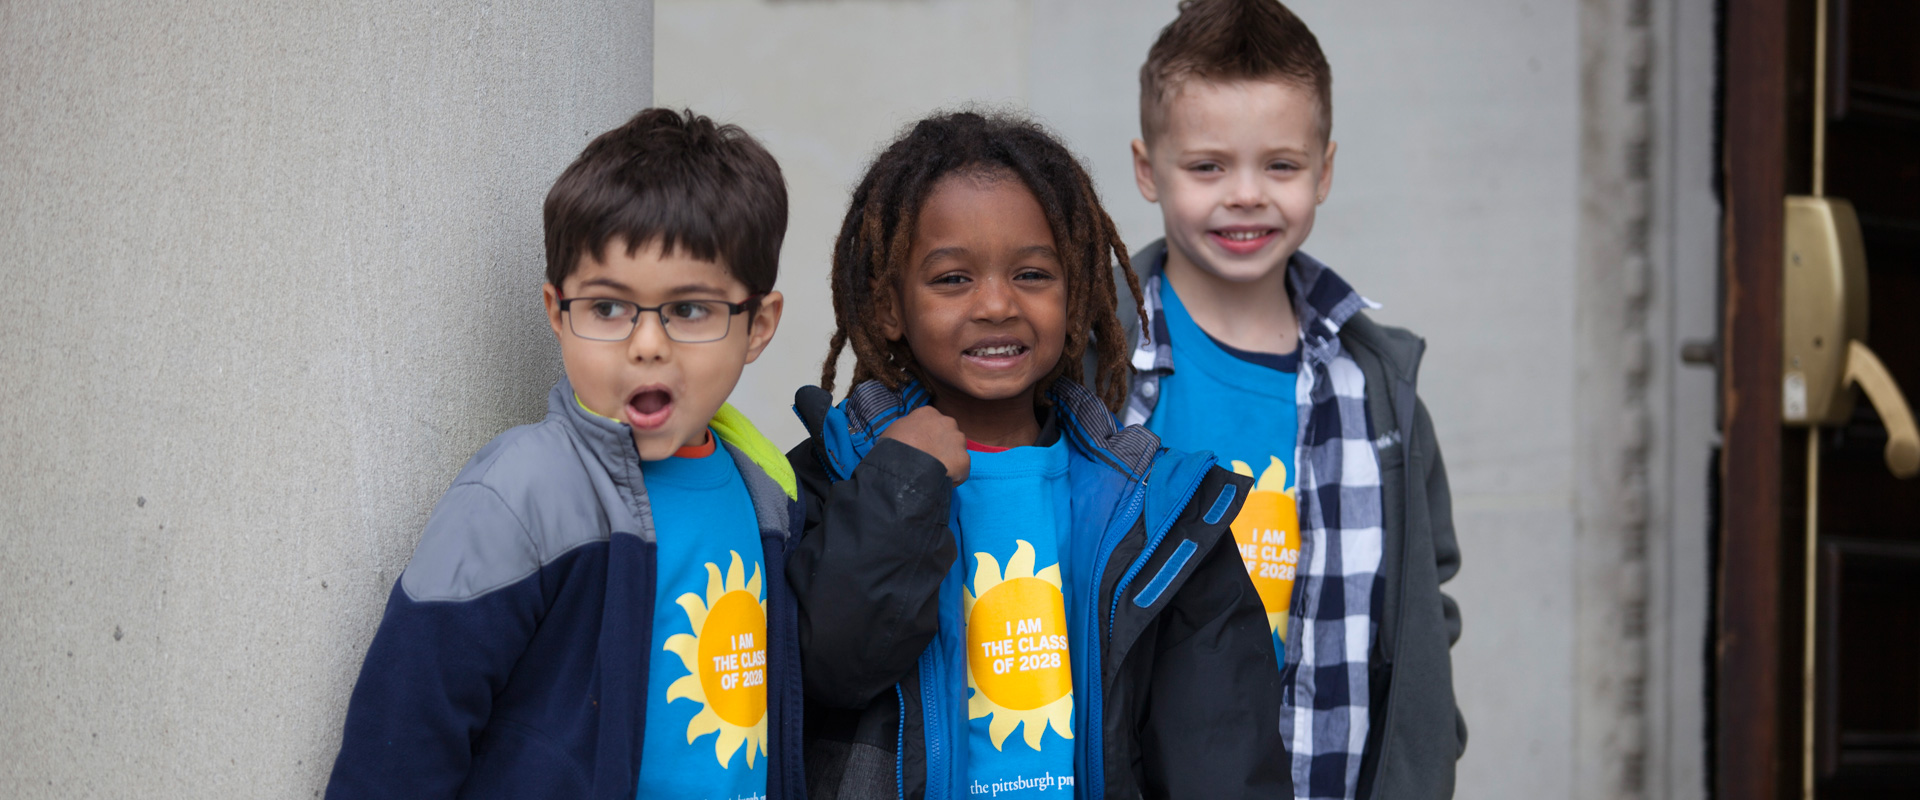 3 Pittsburgh Promise kids smiling